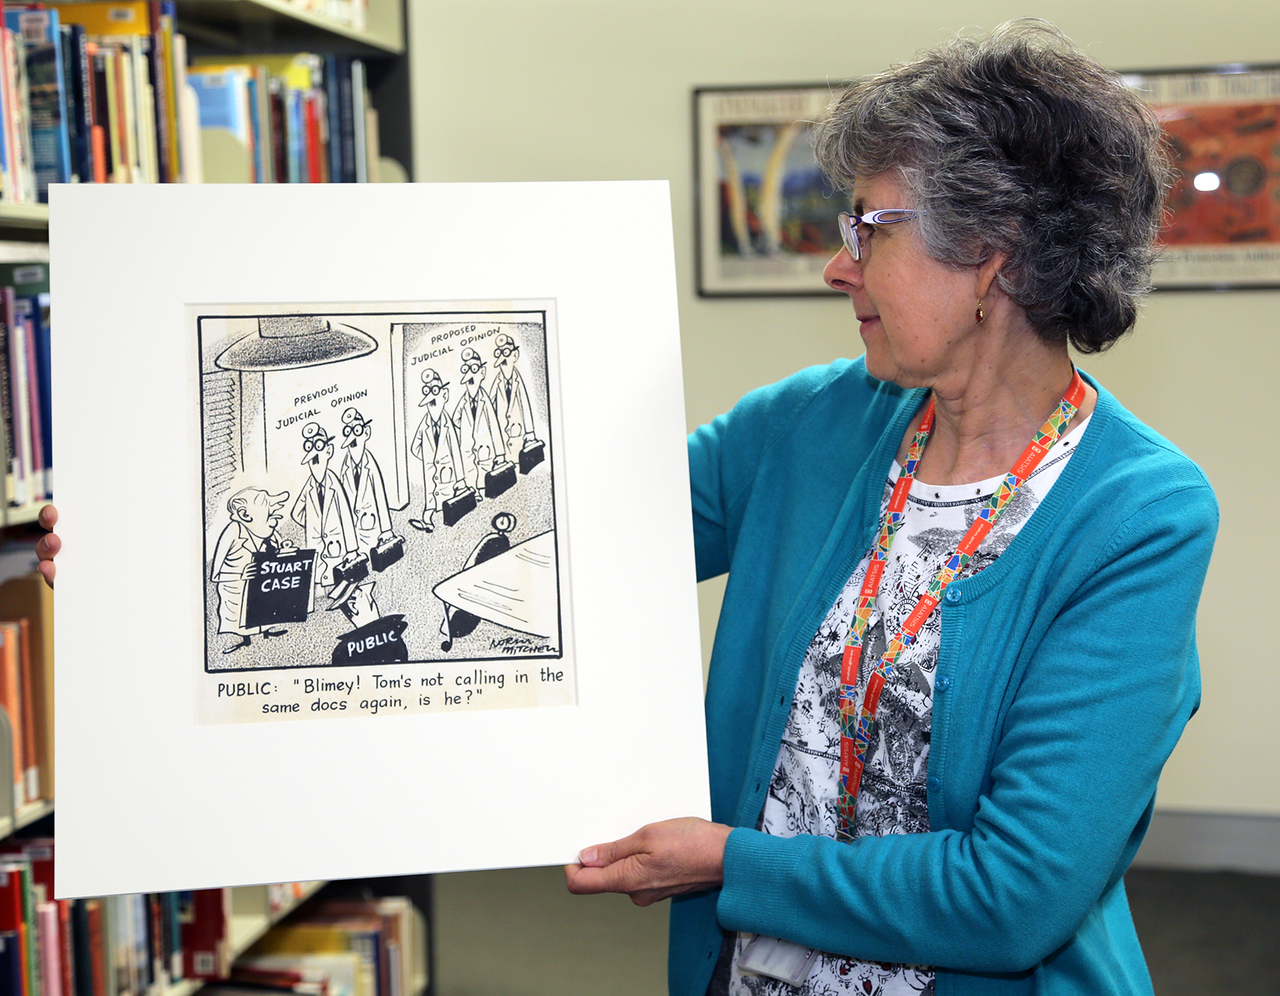 A woman holding a cartoon drawing